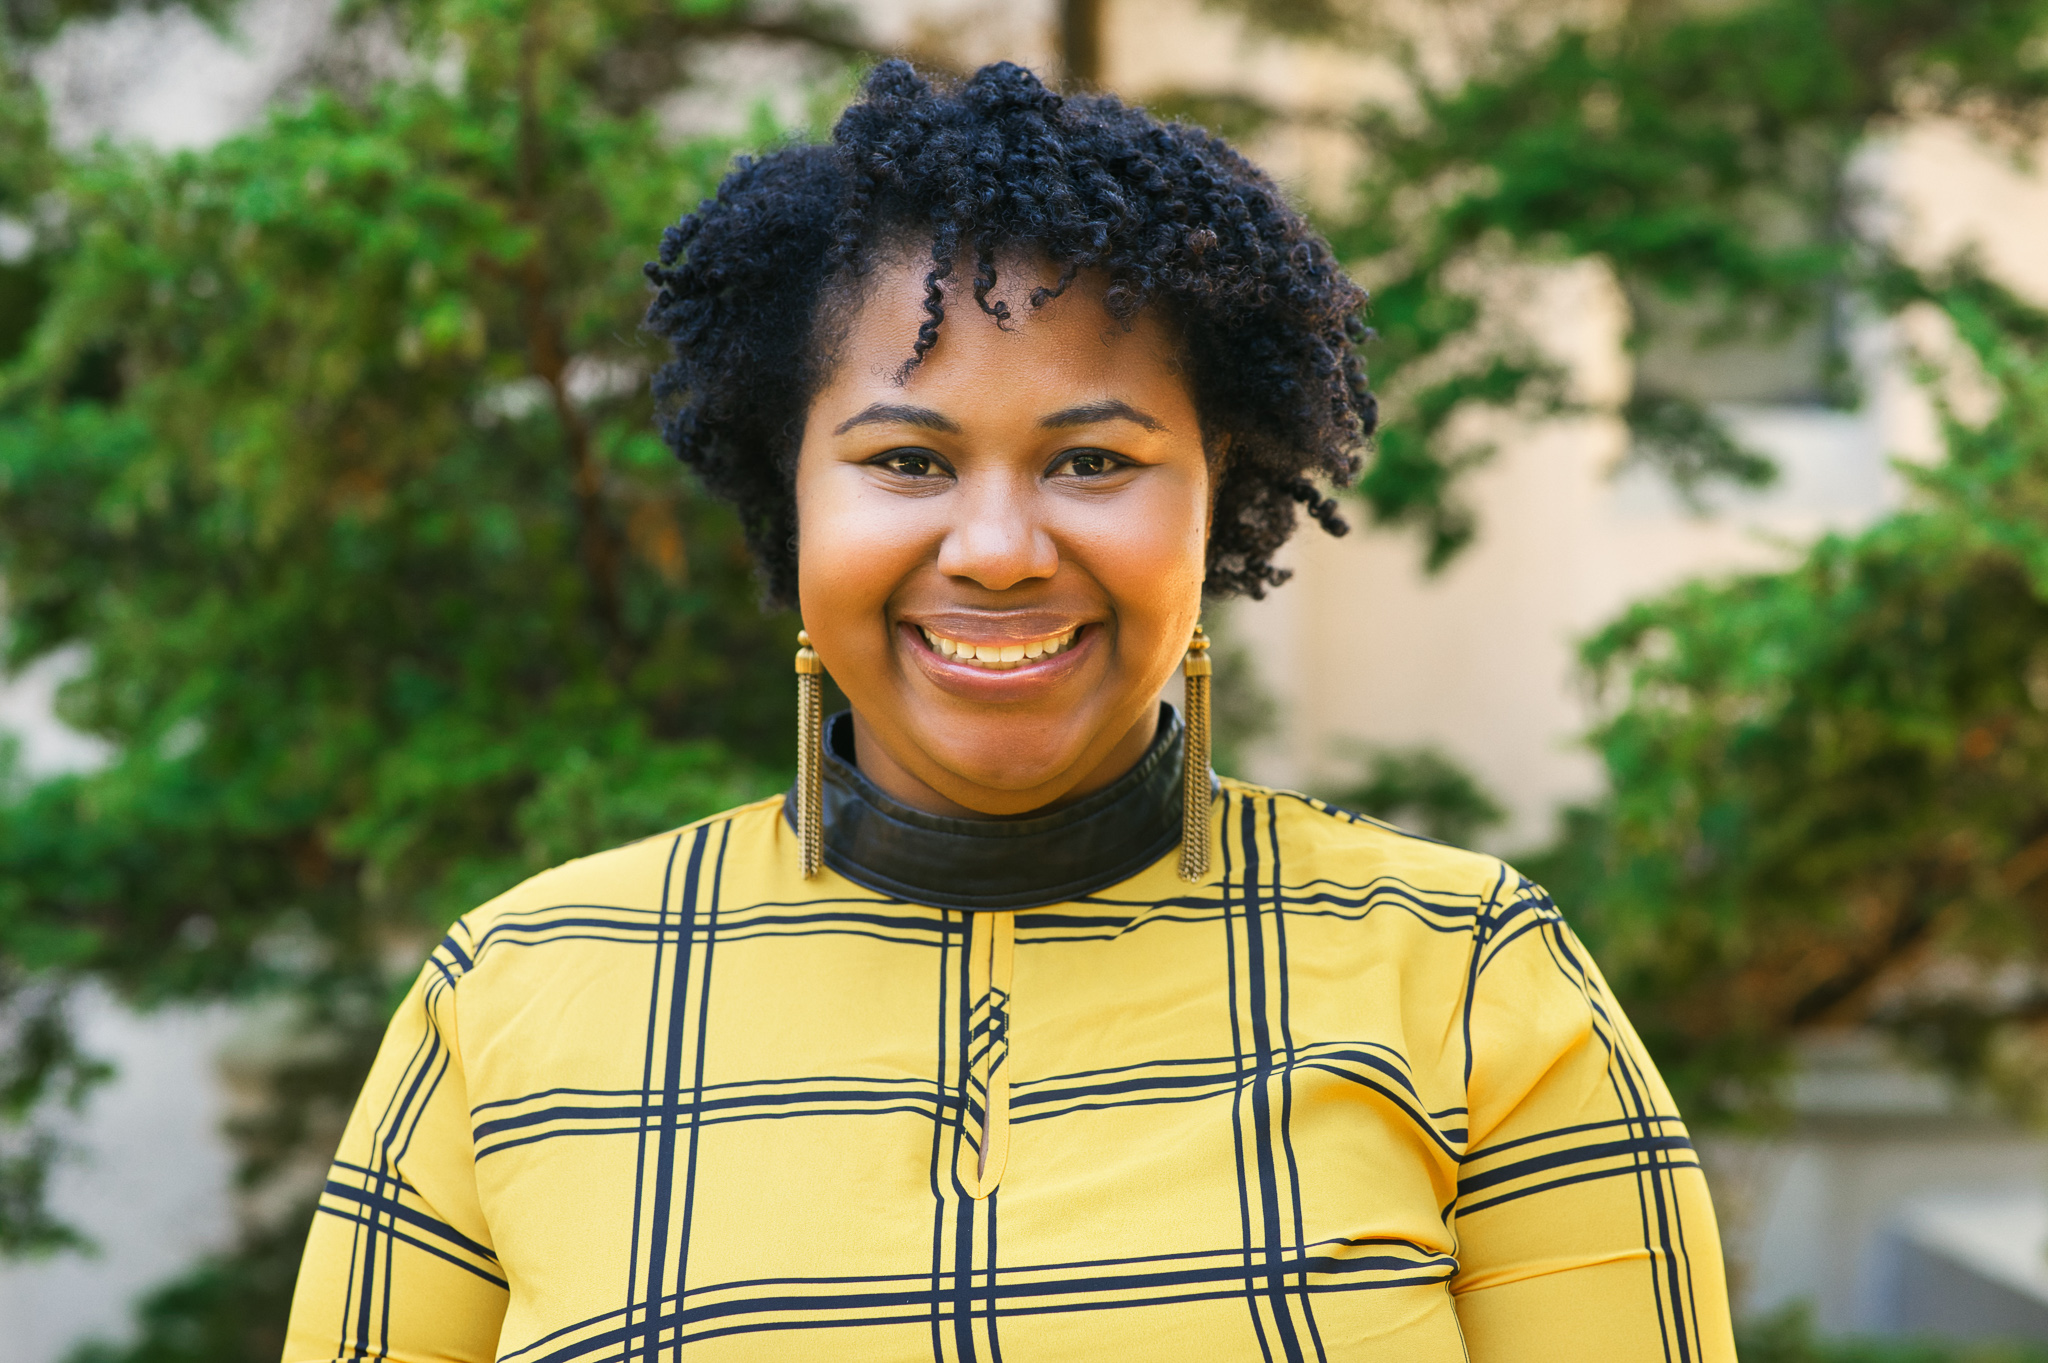 Poet, Educator, and Public Health Change Agent Joins AAAS Department